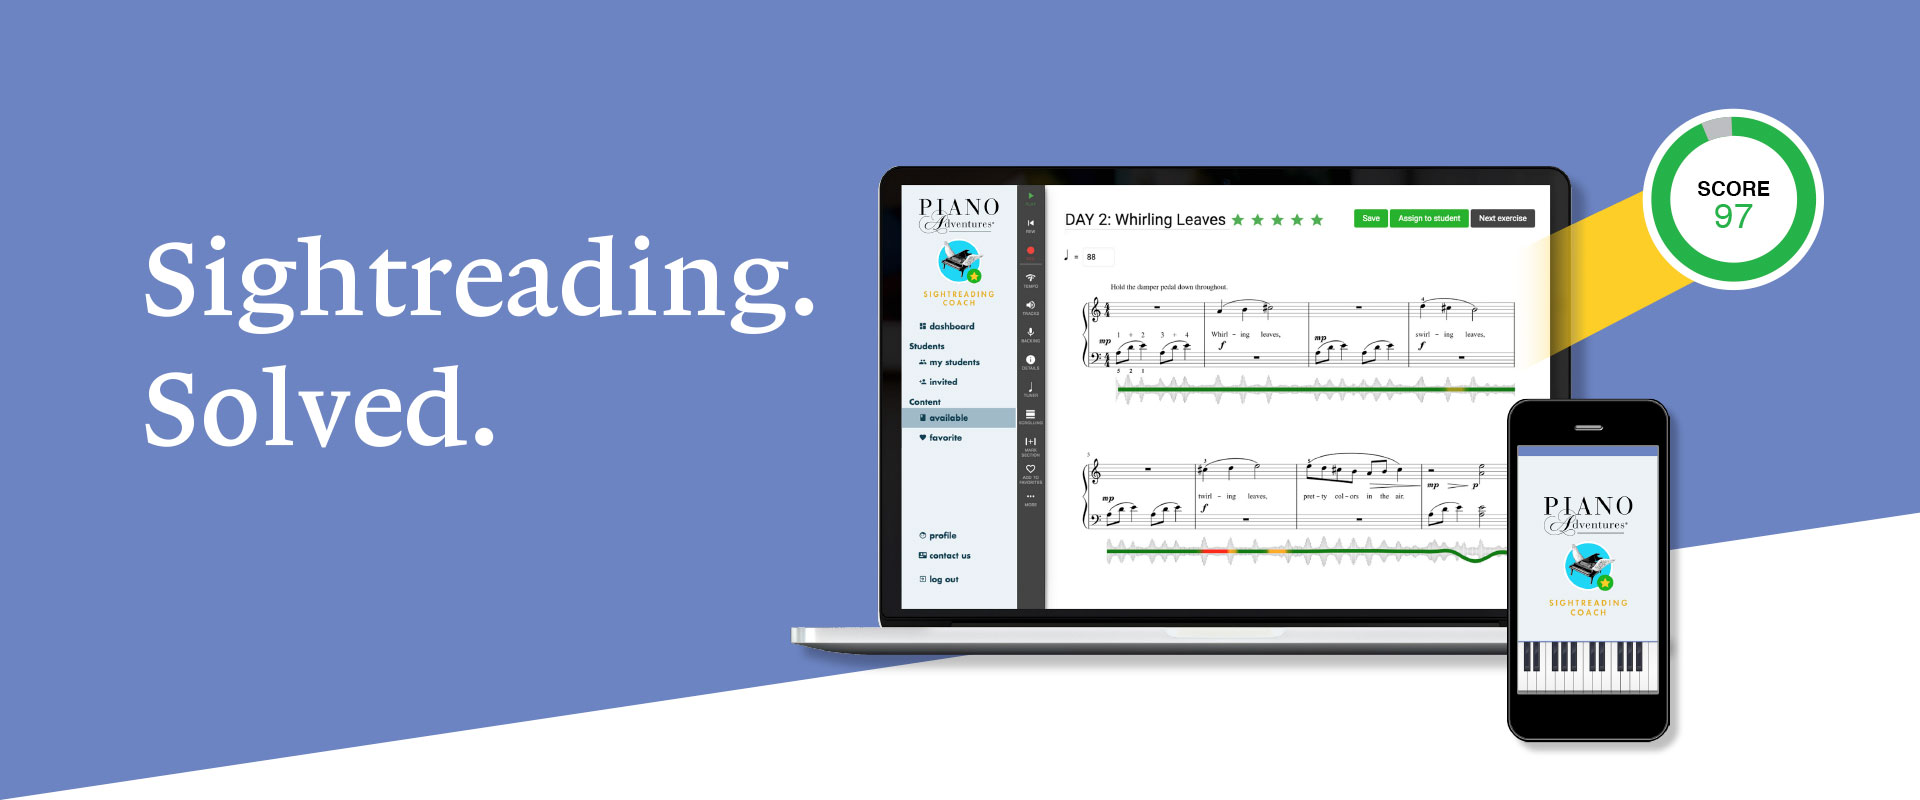 slide-sightreading-coach-solve